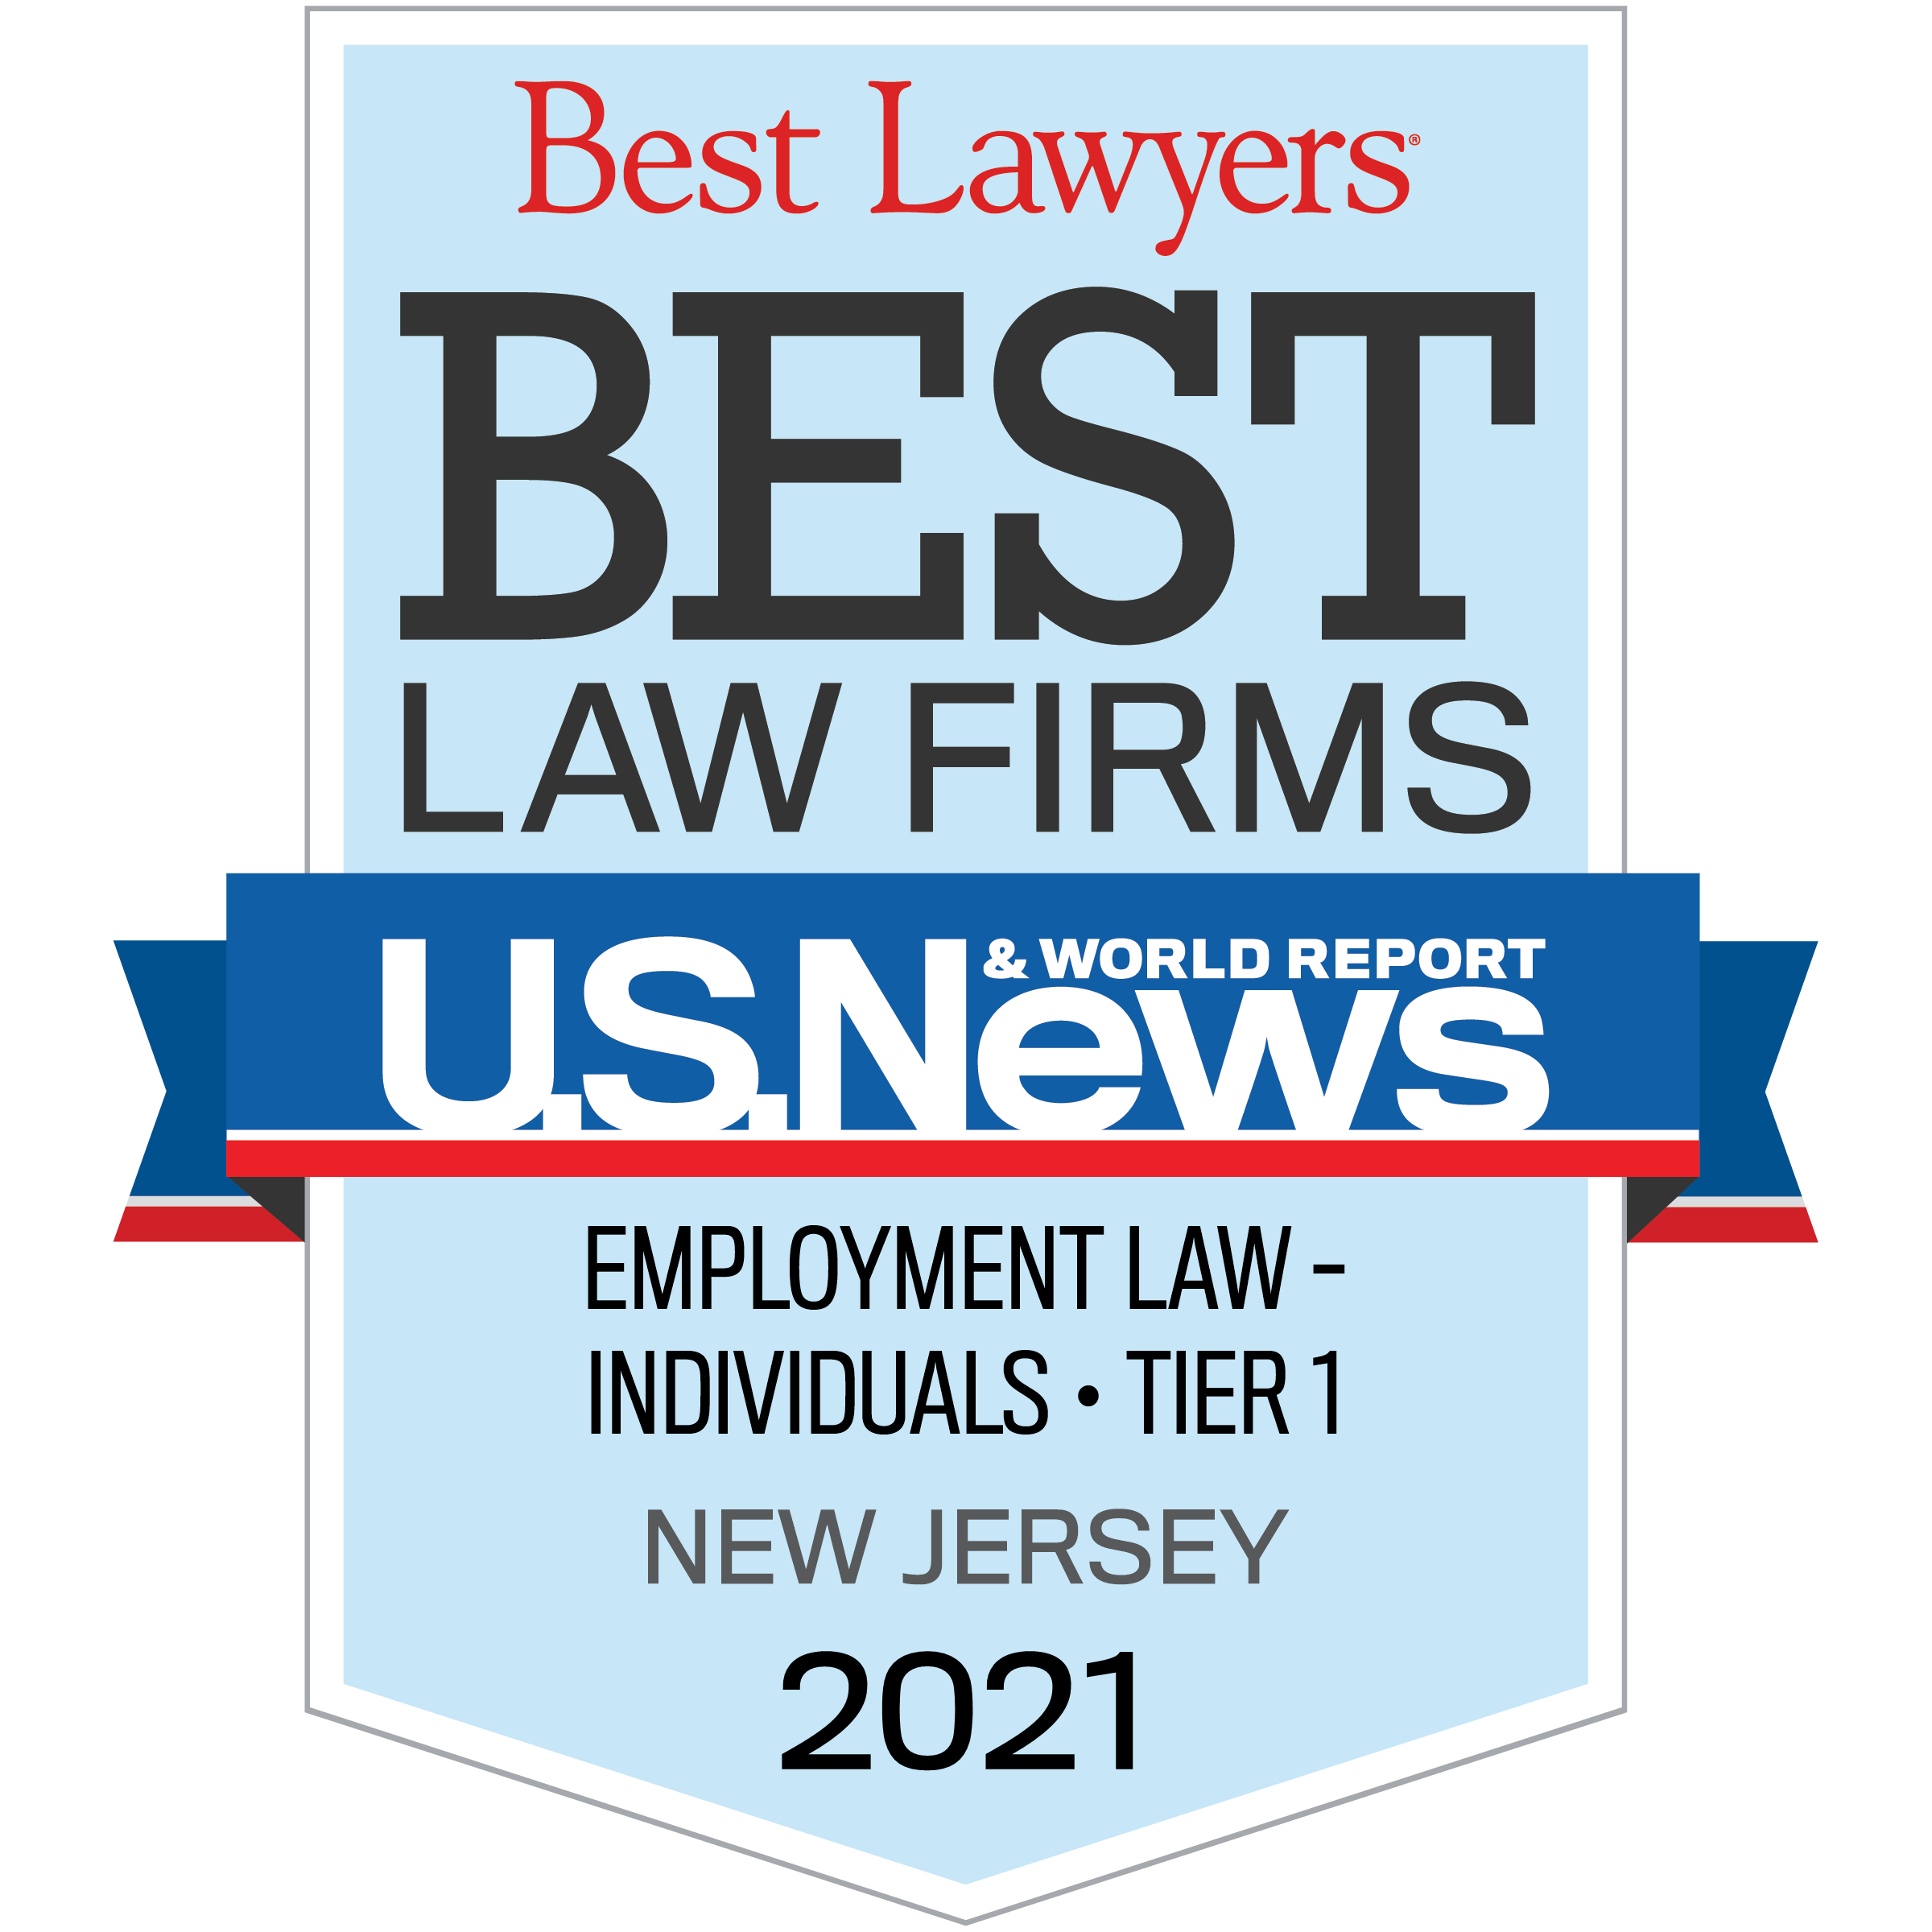 Best Lawyers: Employment Law 2019 by U.S News